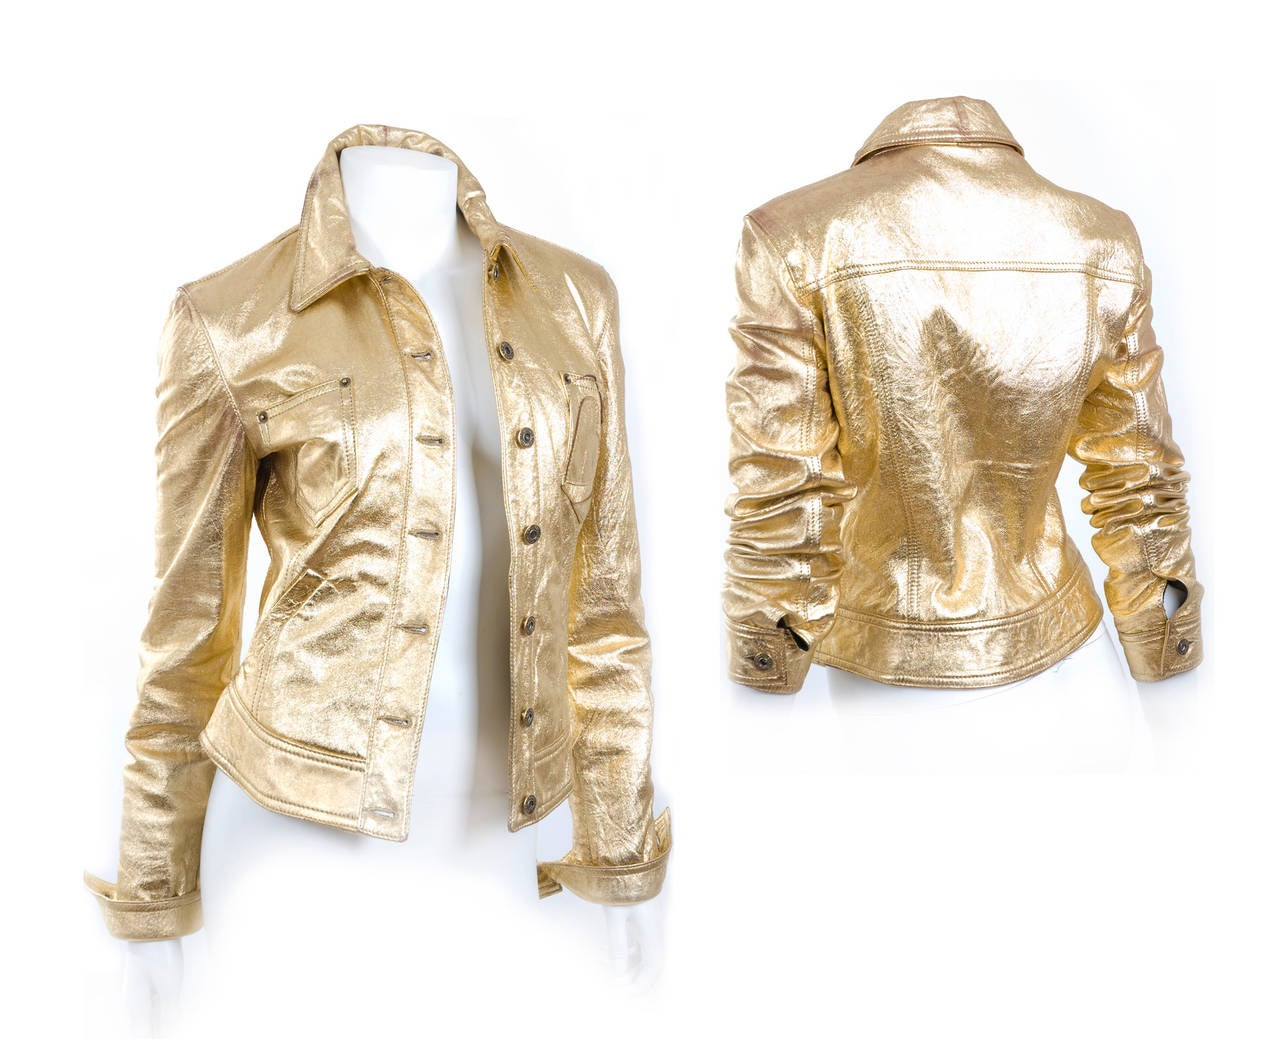 """80's  Moschino Jeans Gold Leather Jacket. Vintage surface with a red undertone. Please see pics. Excellent condition. Size IT 42 - US 8  Measurements: Length 20"""" inches - 51cm - Bust 34"""" inches - 89cm"""